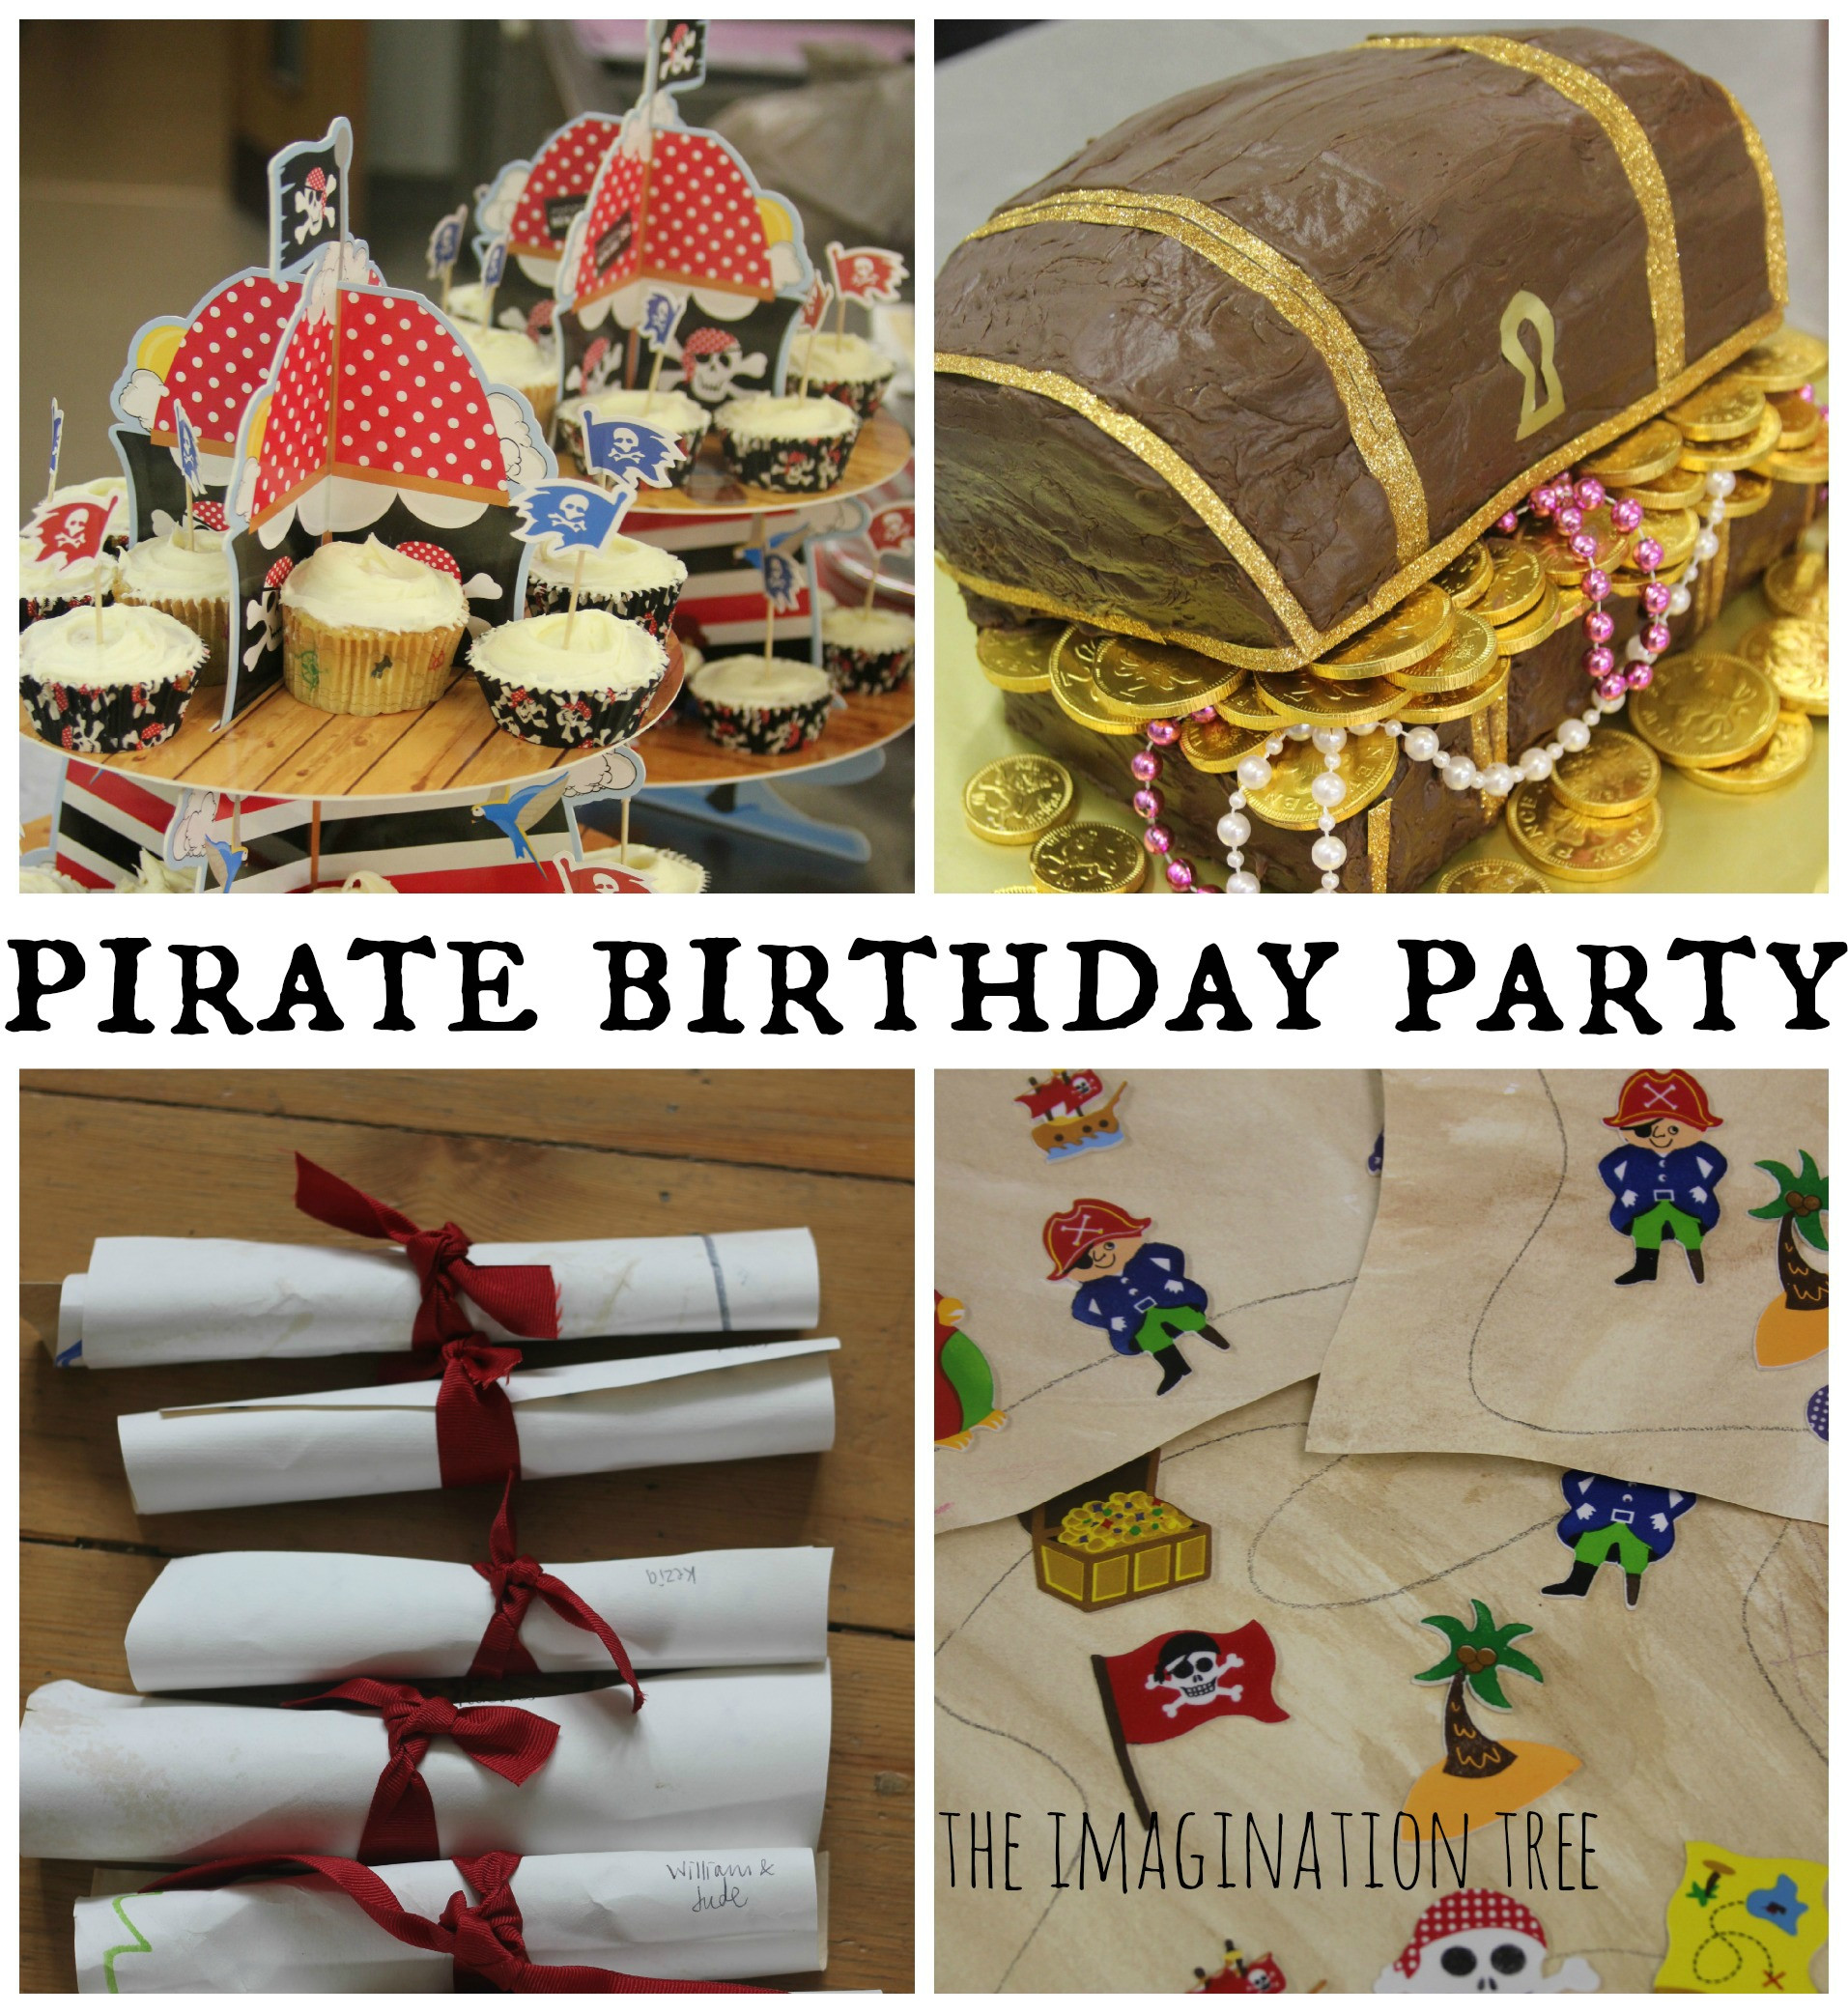 Best ideas about Pirate Birthday Party . Save or Pin Pirate Birthday Party The Imagination Tree Now.